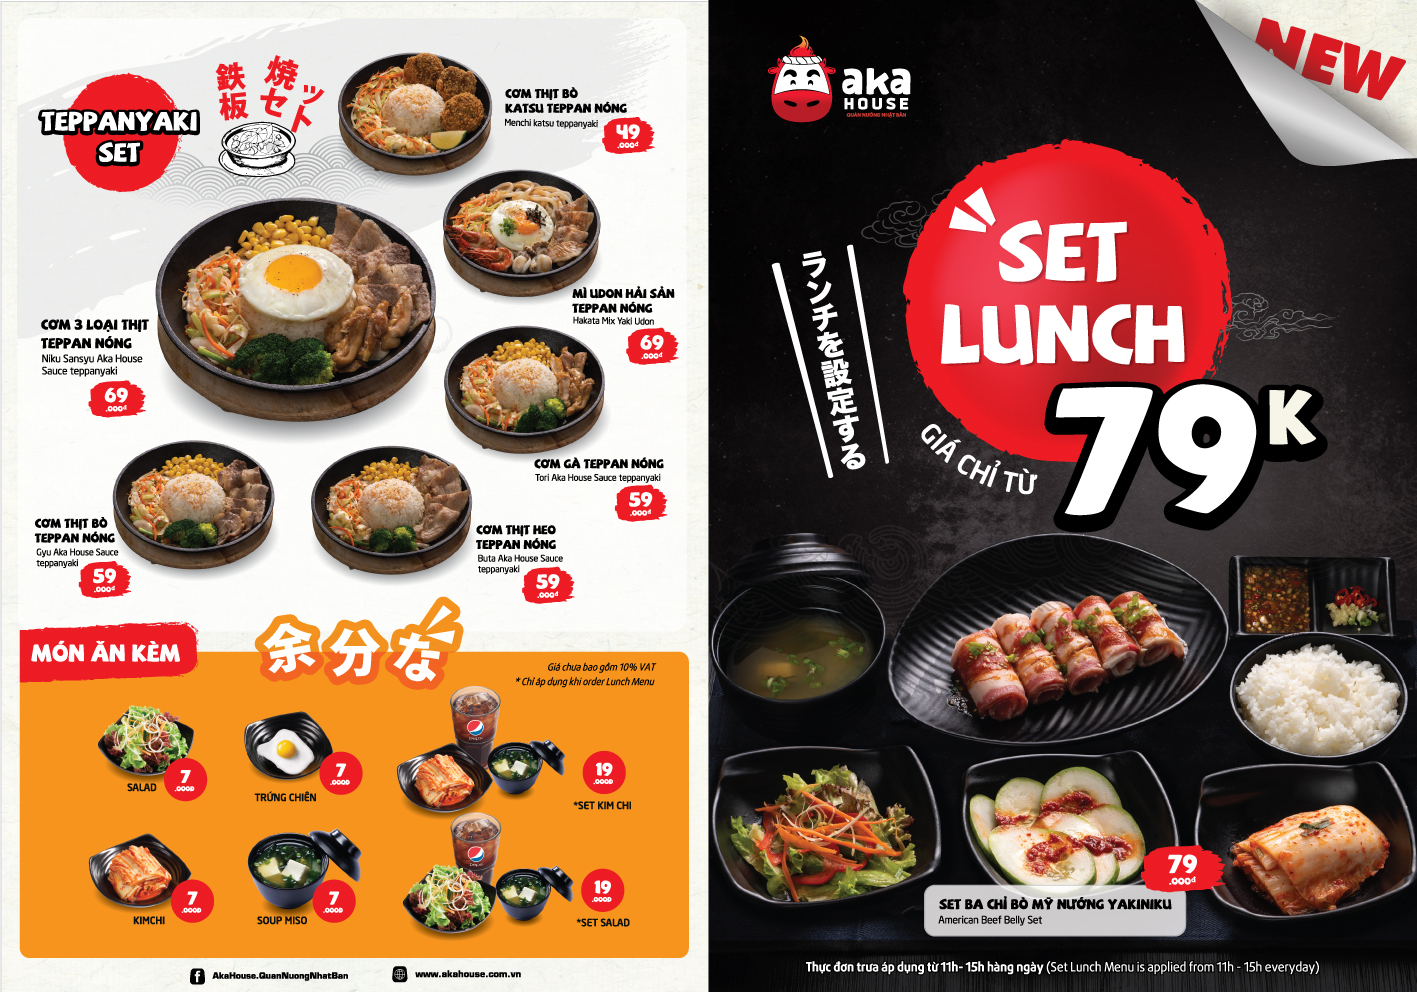 Tinh-1-Set-Lunch-(25Wx35H)cm